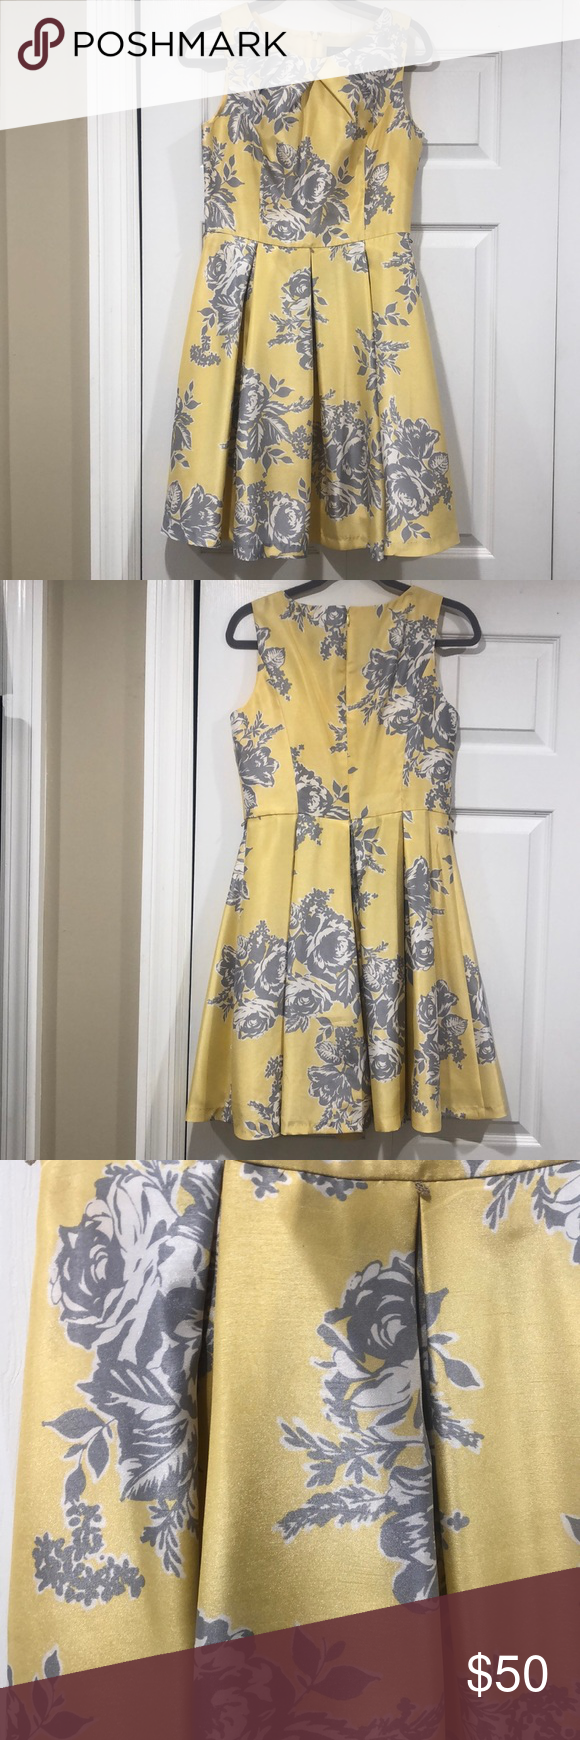 #Beautiful #Dress #floral #Graduation #Great #Grey #Light #Size #yellow Great graduation dress! Size 8, beautiful floral dress. Yellow, light grey and white. I wore it once for my college graduation! Fits very well Jessica Howard Dresses Midi #graduationdresscollege Great graduation dress! Size 8, beautiful floral dress. Yellow, light grey and white. I wore it once for my college graduation! Fits very well Jessica Howard Dresses Midi #graduationdresscollege